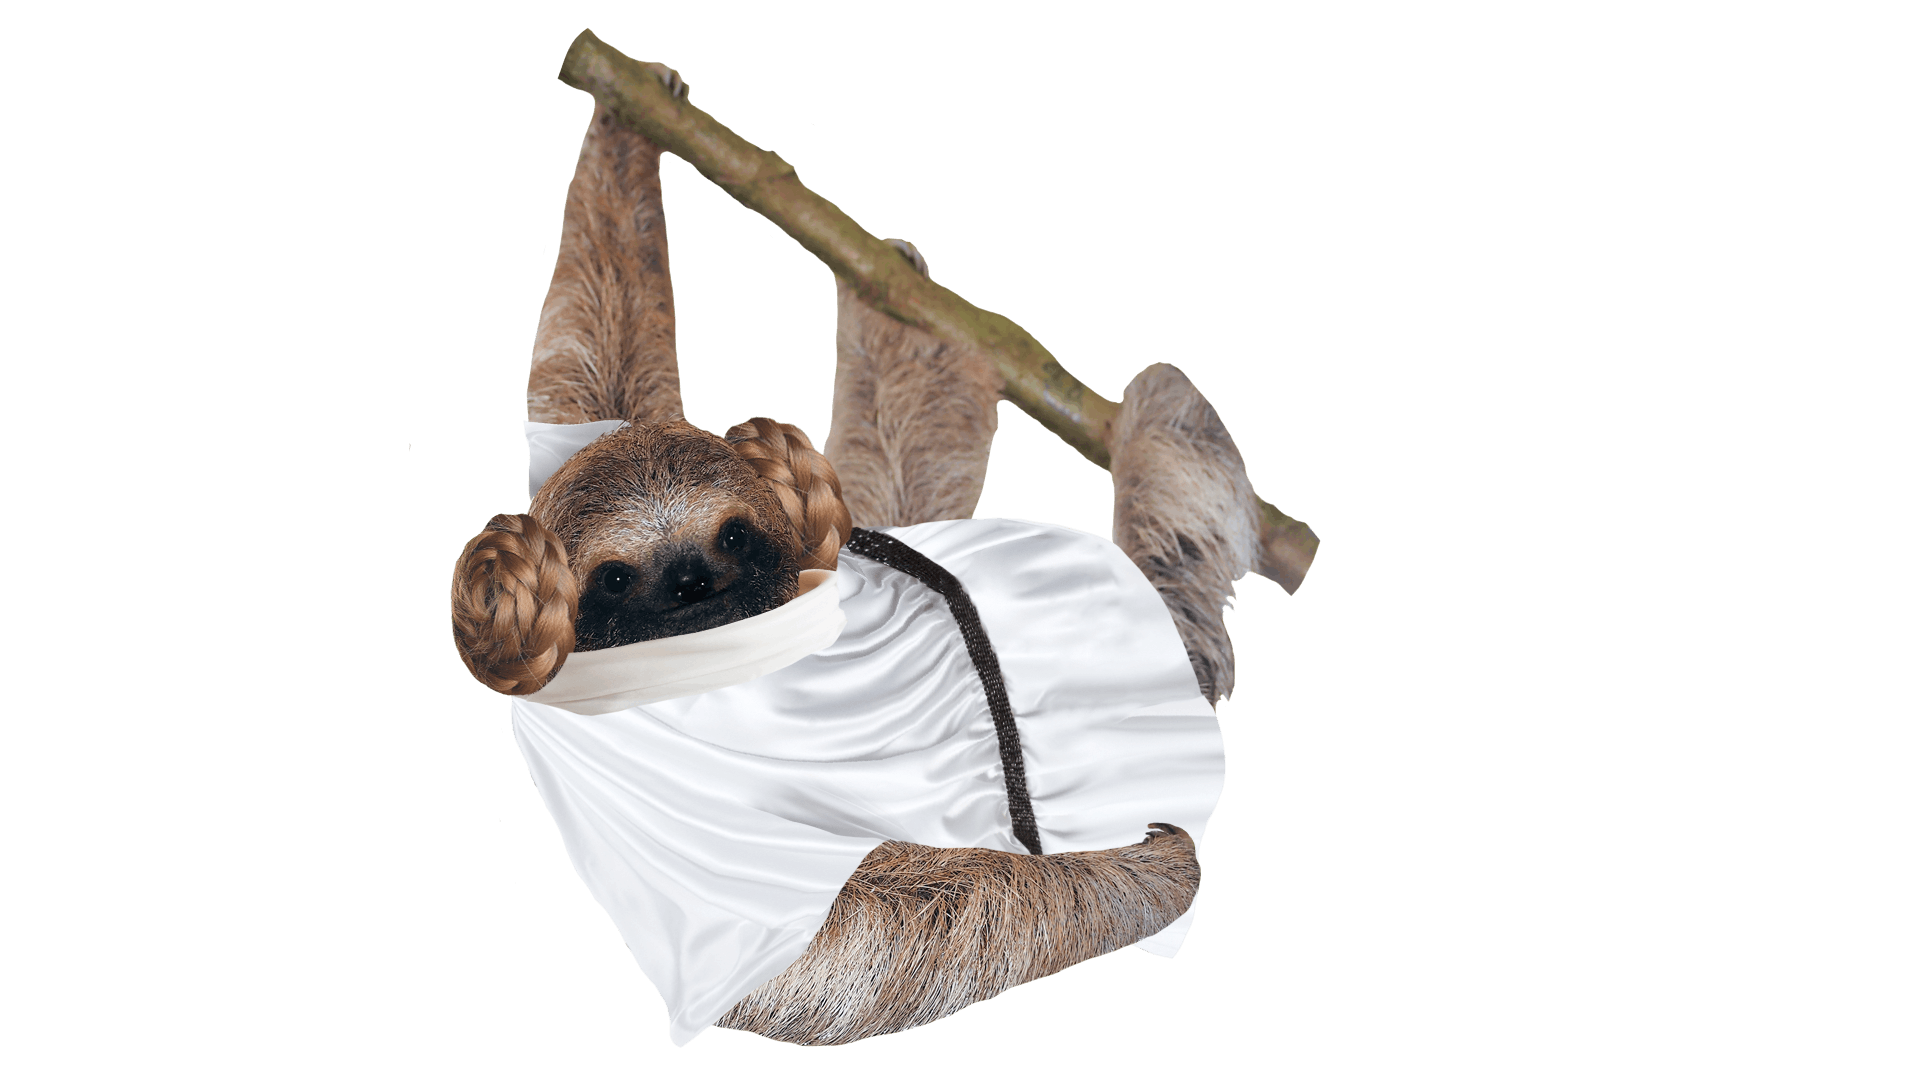 Princess Leia Sloth